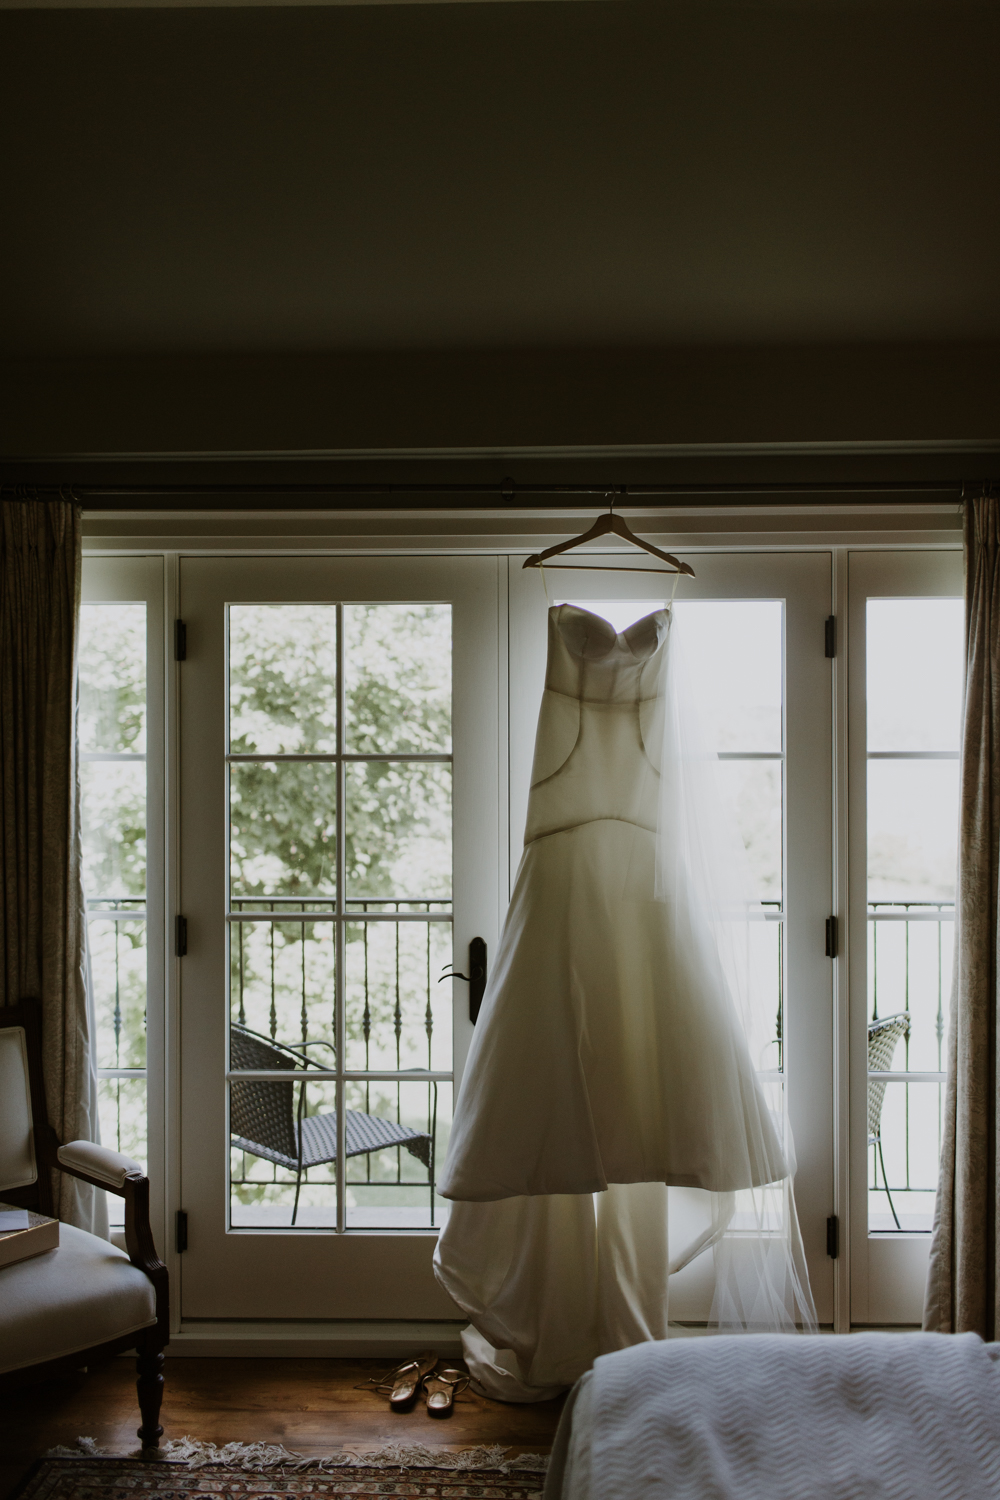 Dress hanging in window of Huntsville cottage